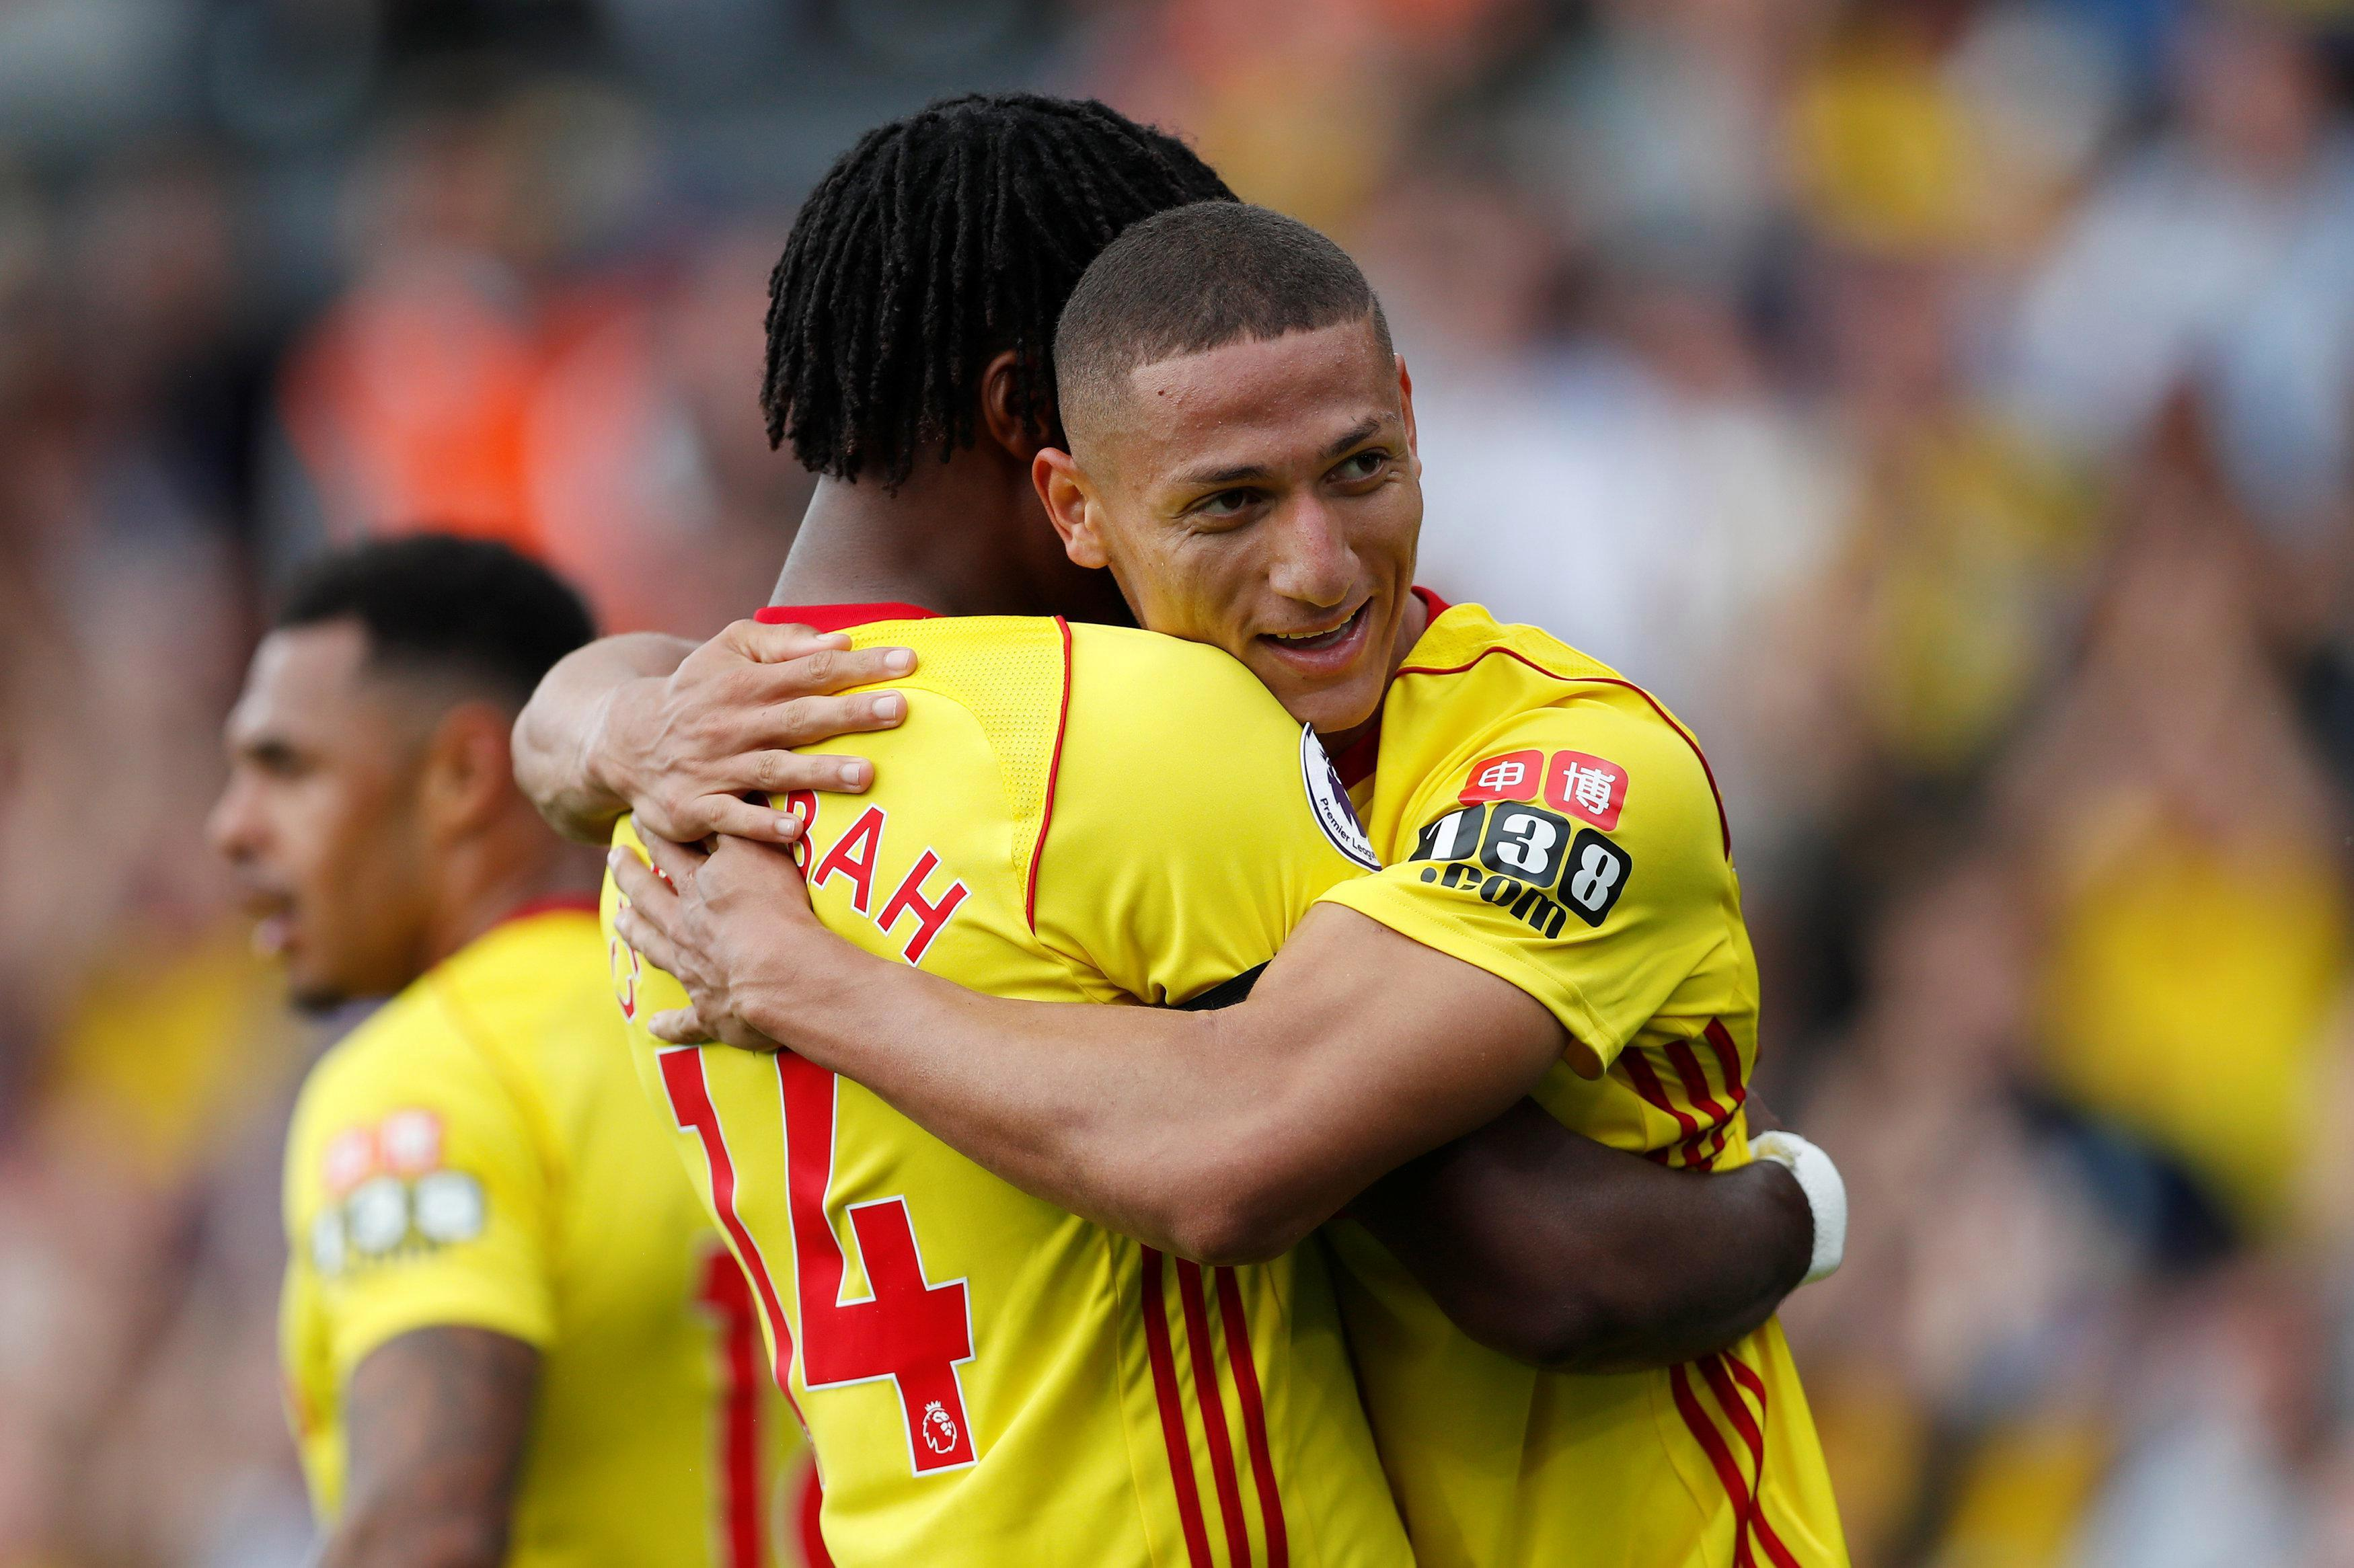 Richarlison has earned his side three points with stoppage time goals this season